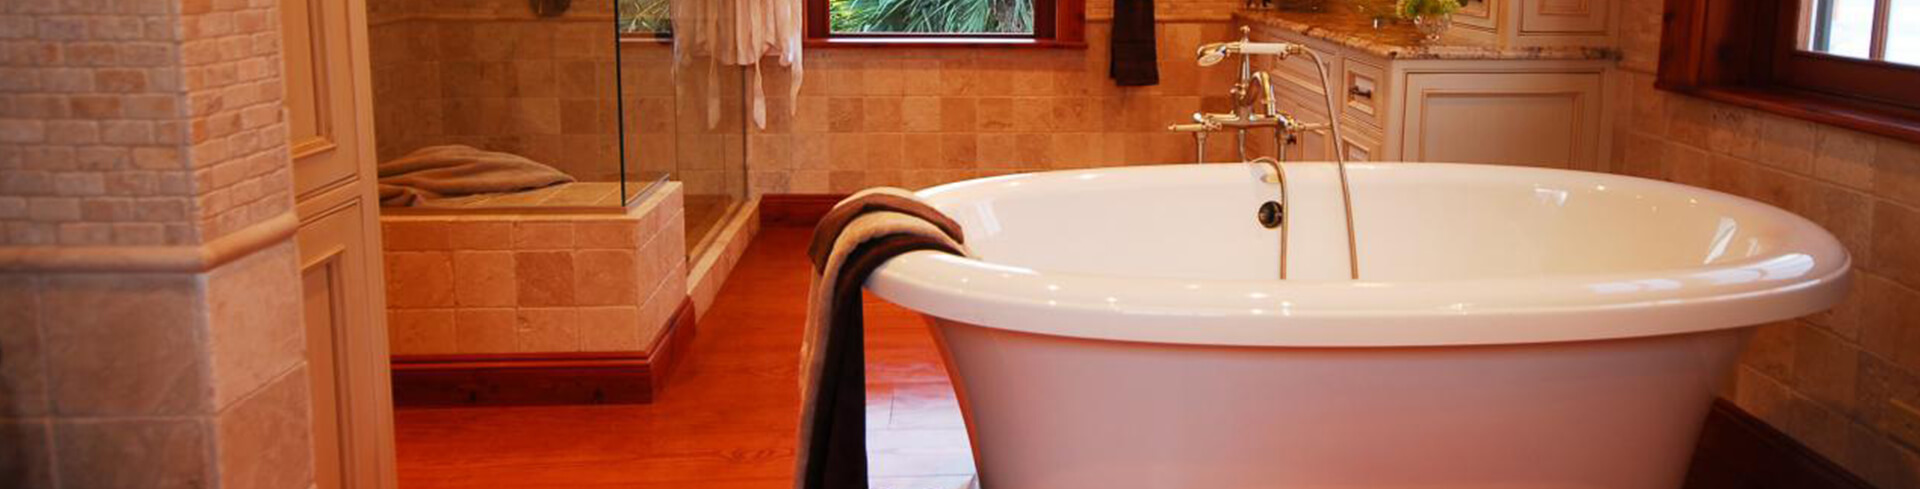 Professional Bathtub Reglazing and Refinishing